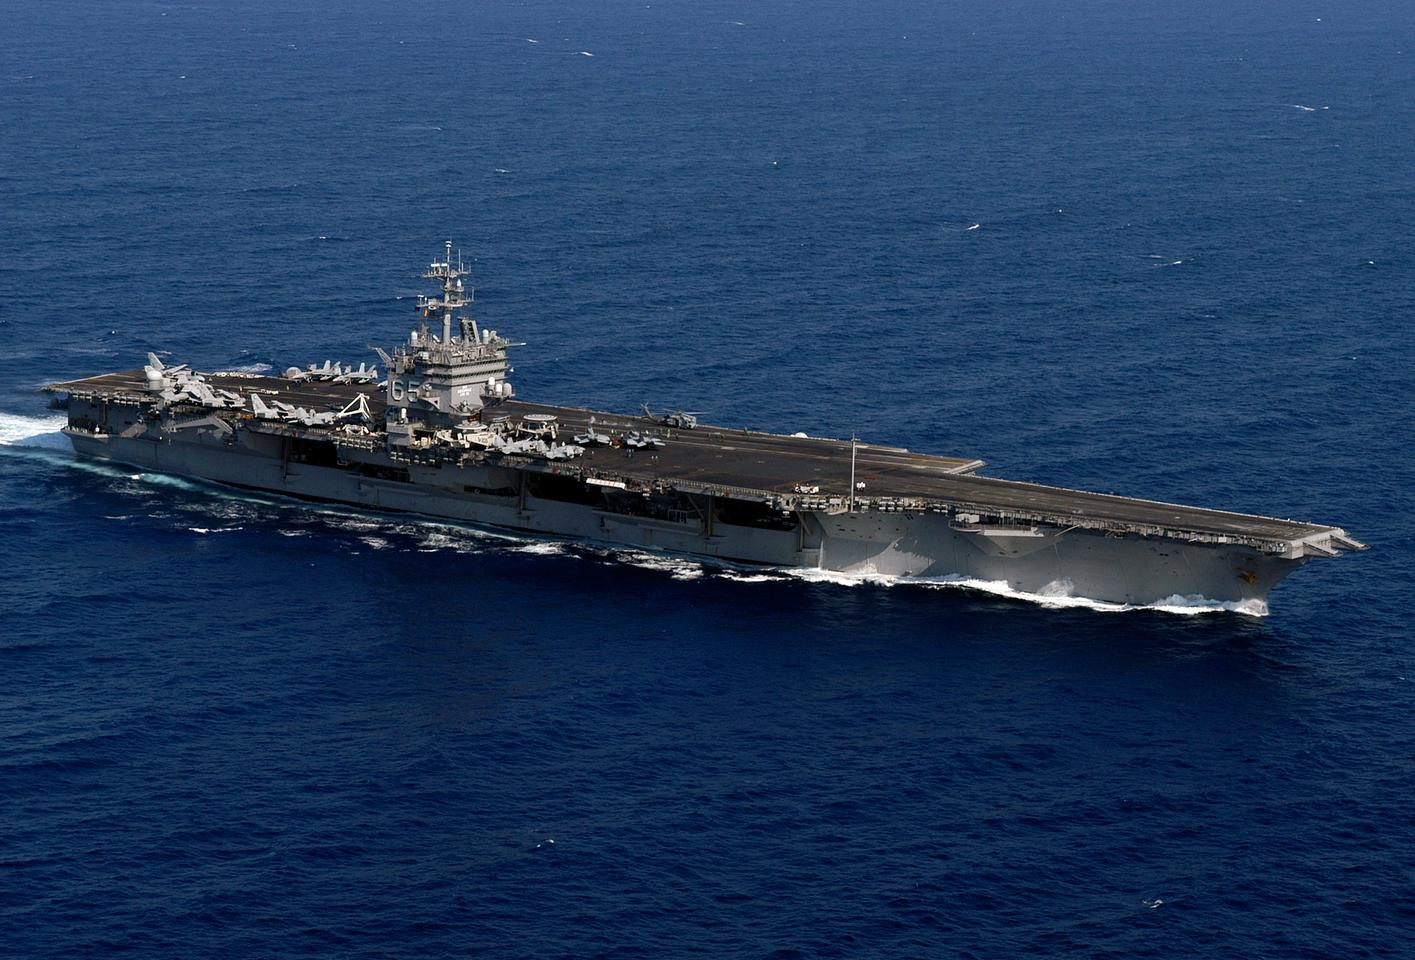 SPEAR will be used to develop supersonic missiles to be deployed aboard US Navy carriers like the USS Gerald R Ford